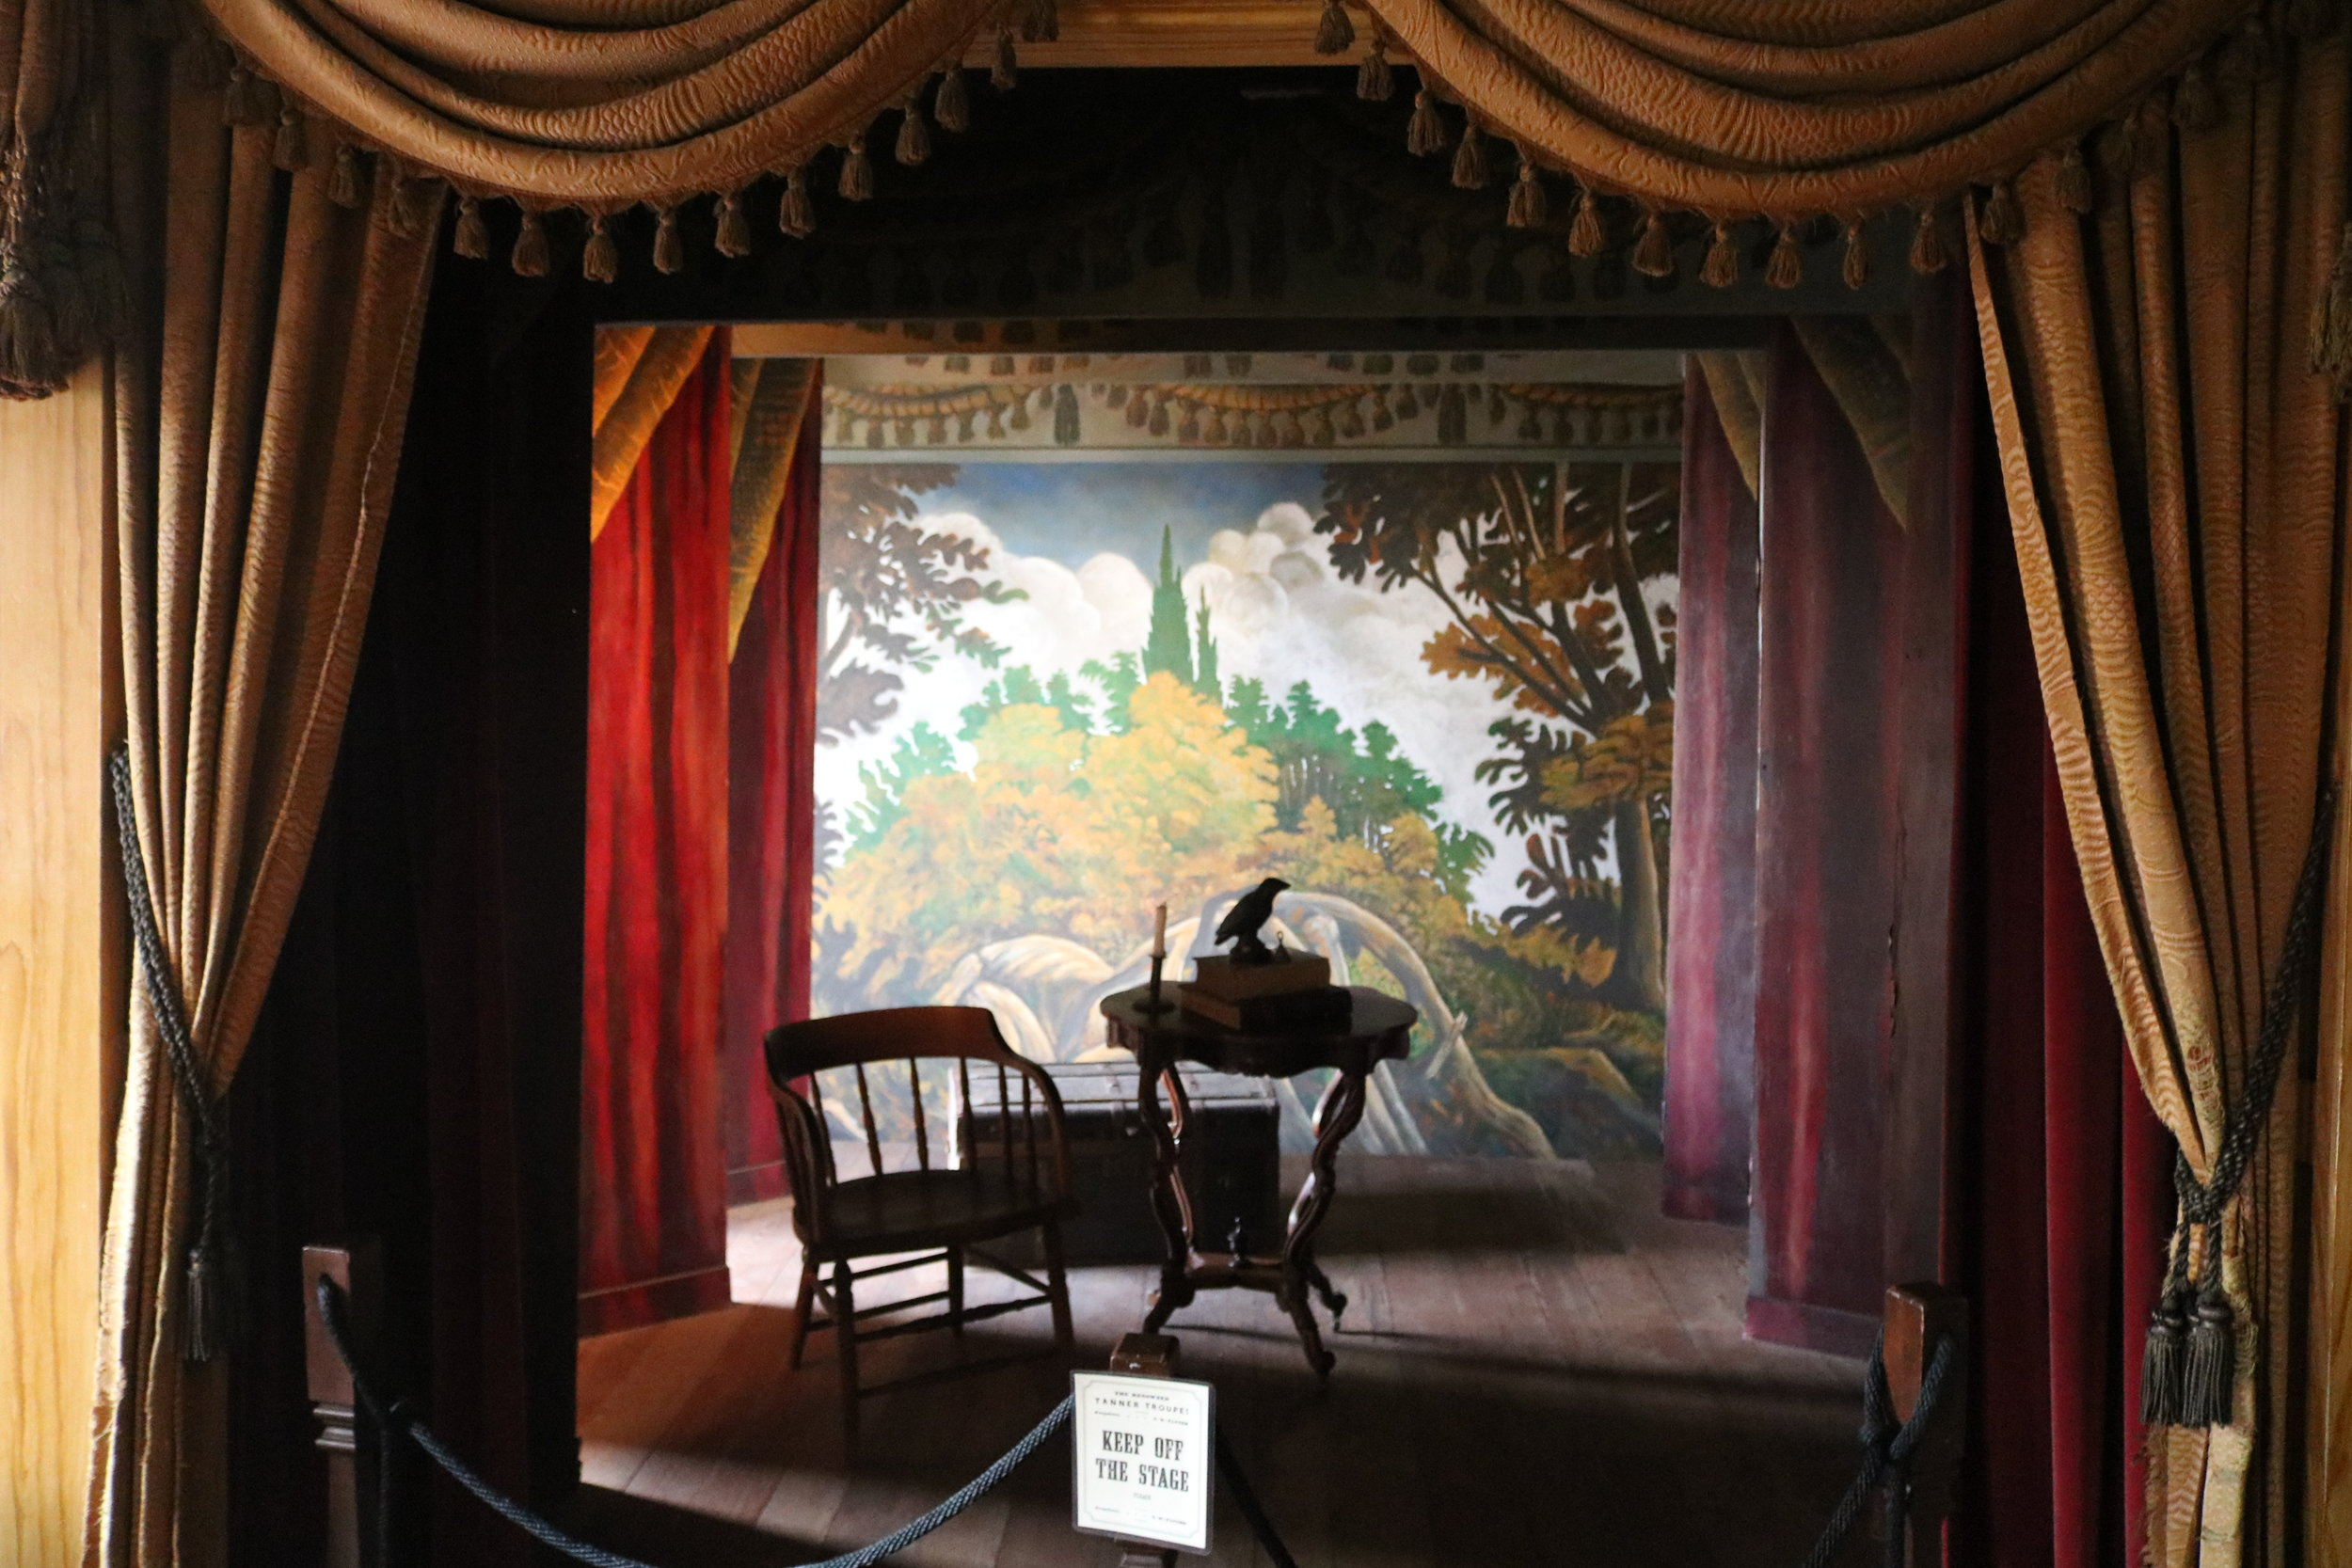 The Whaley House Theater